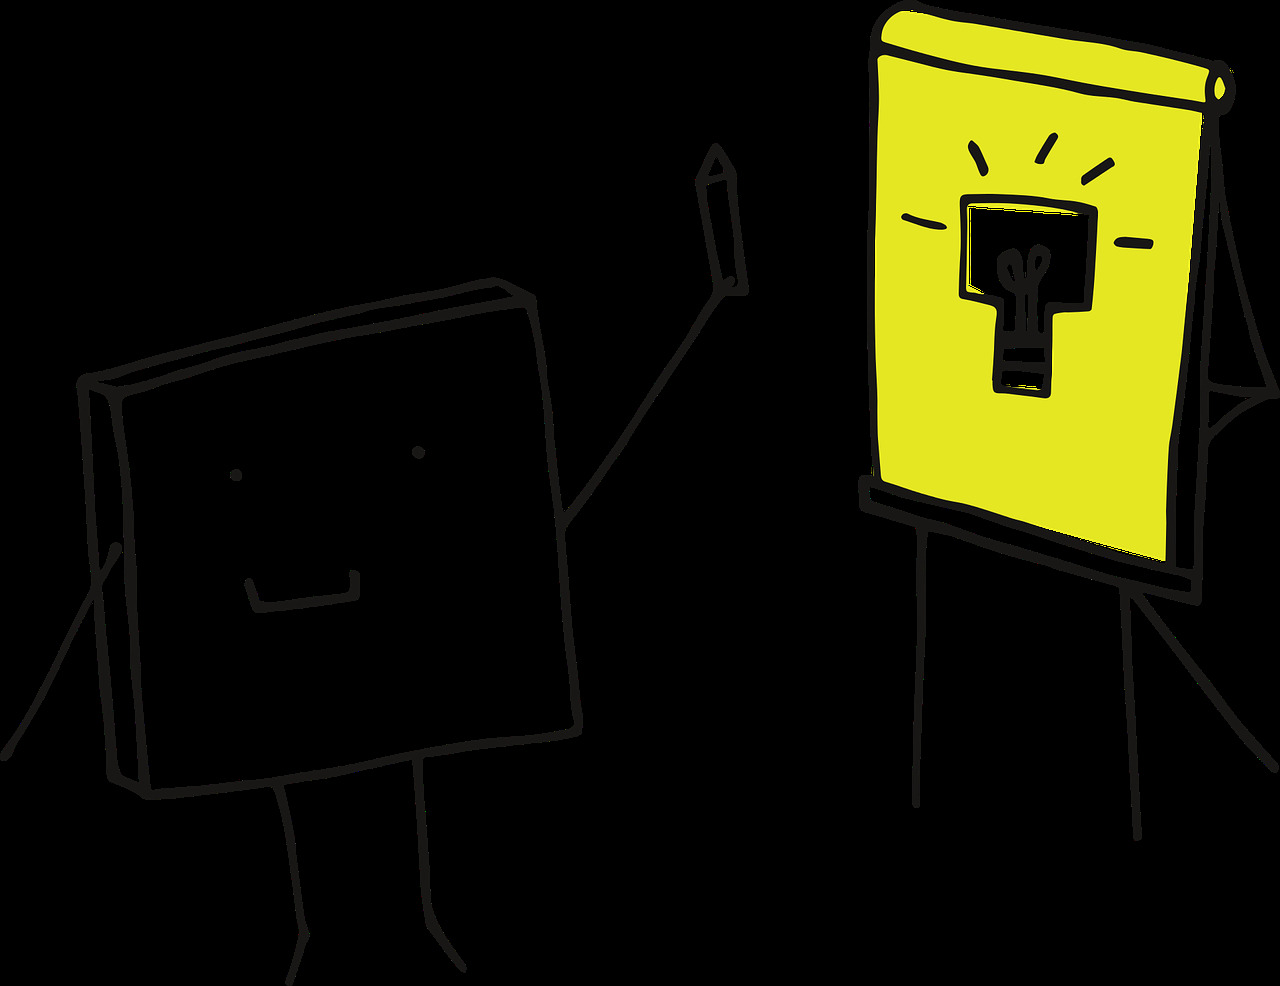 Cartoon block figure next to presentation board with a light bulb drawing